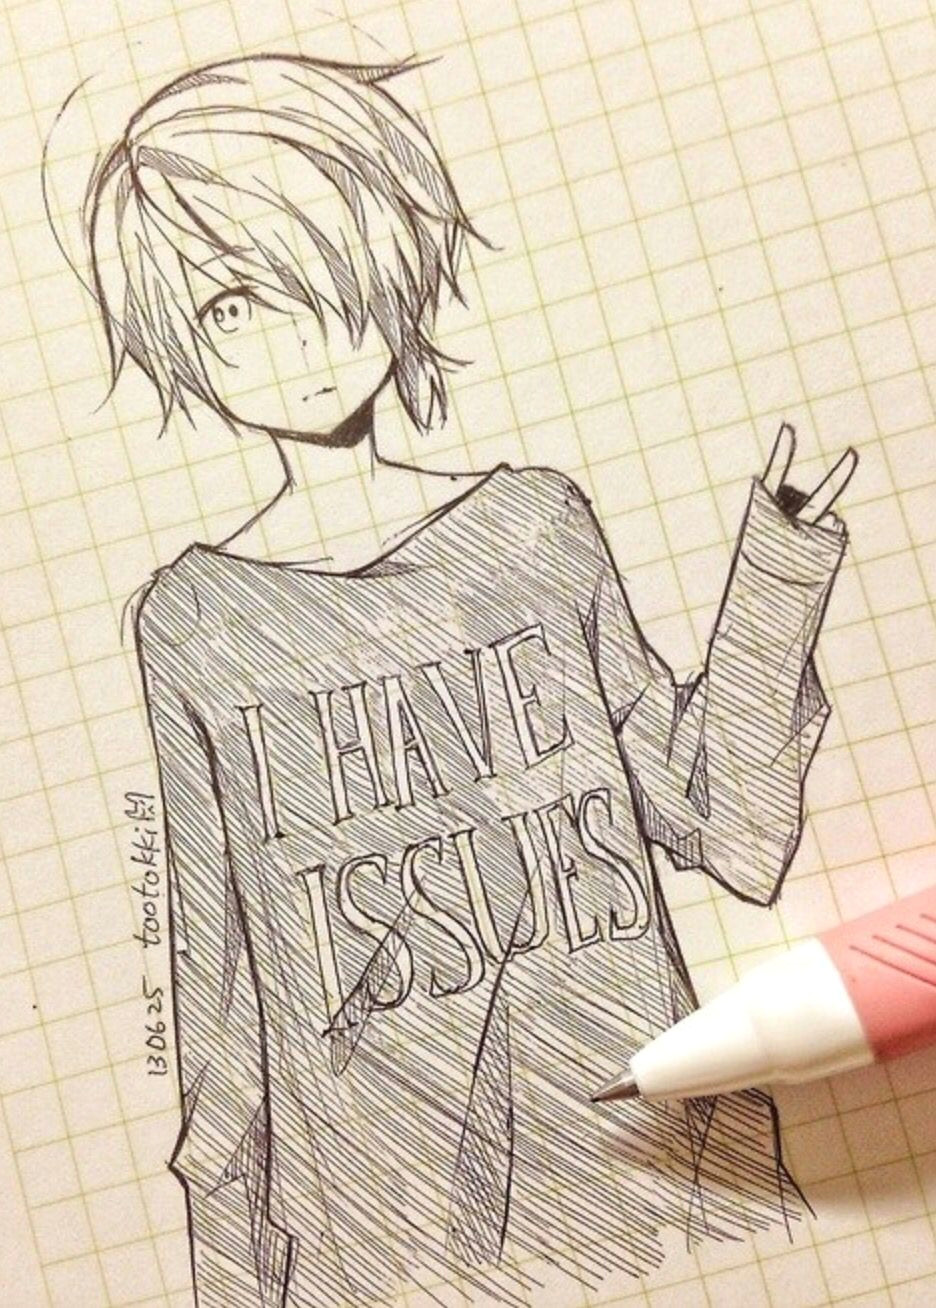 Drawing Anime 3 4 Cute Anime Drawing tootokki I Have issues Sweater Anime Drawings